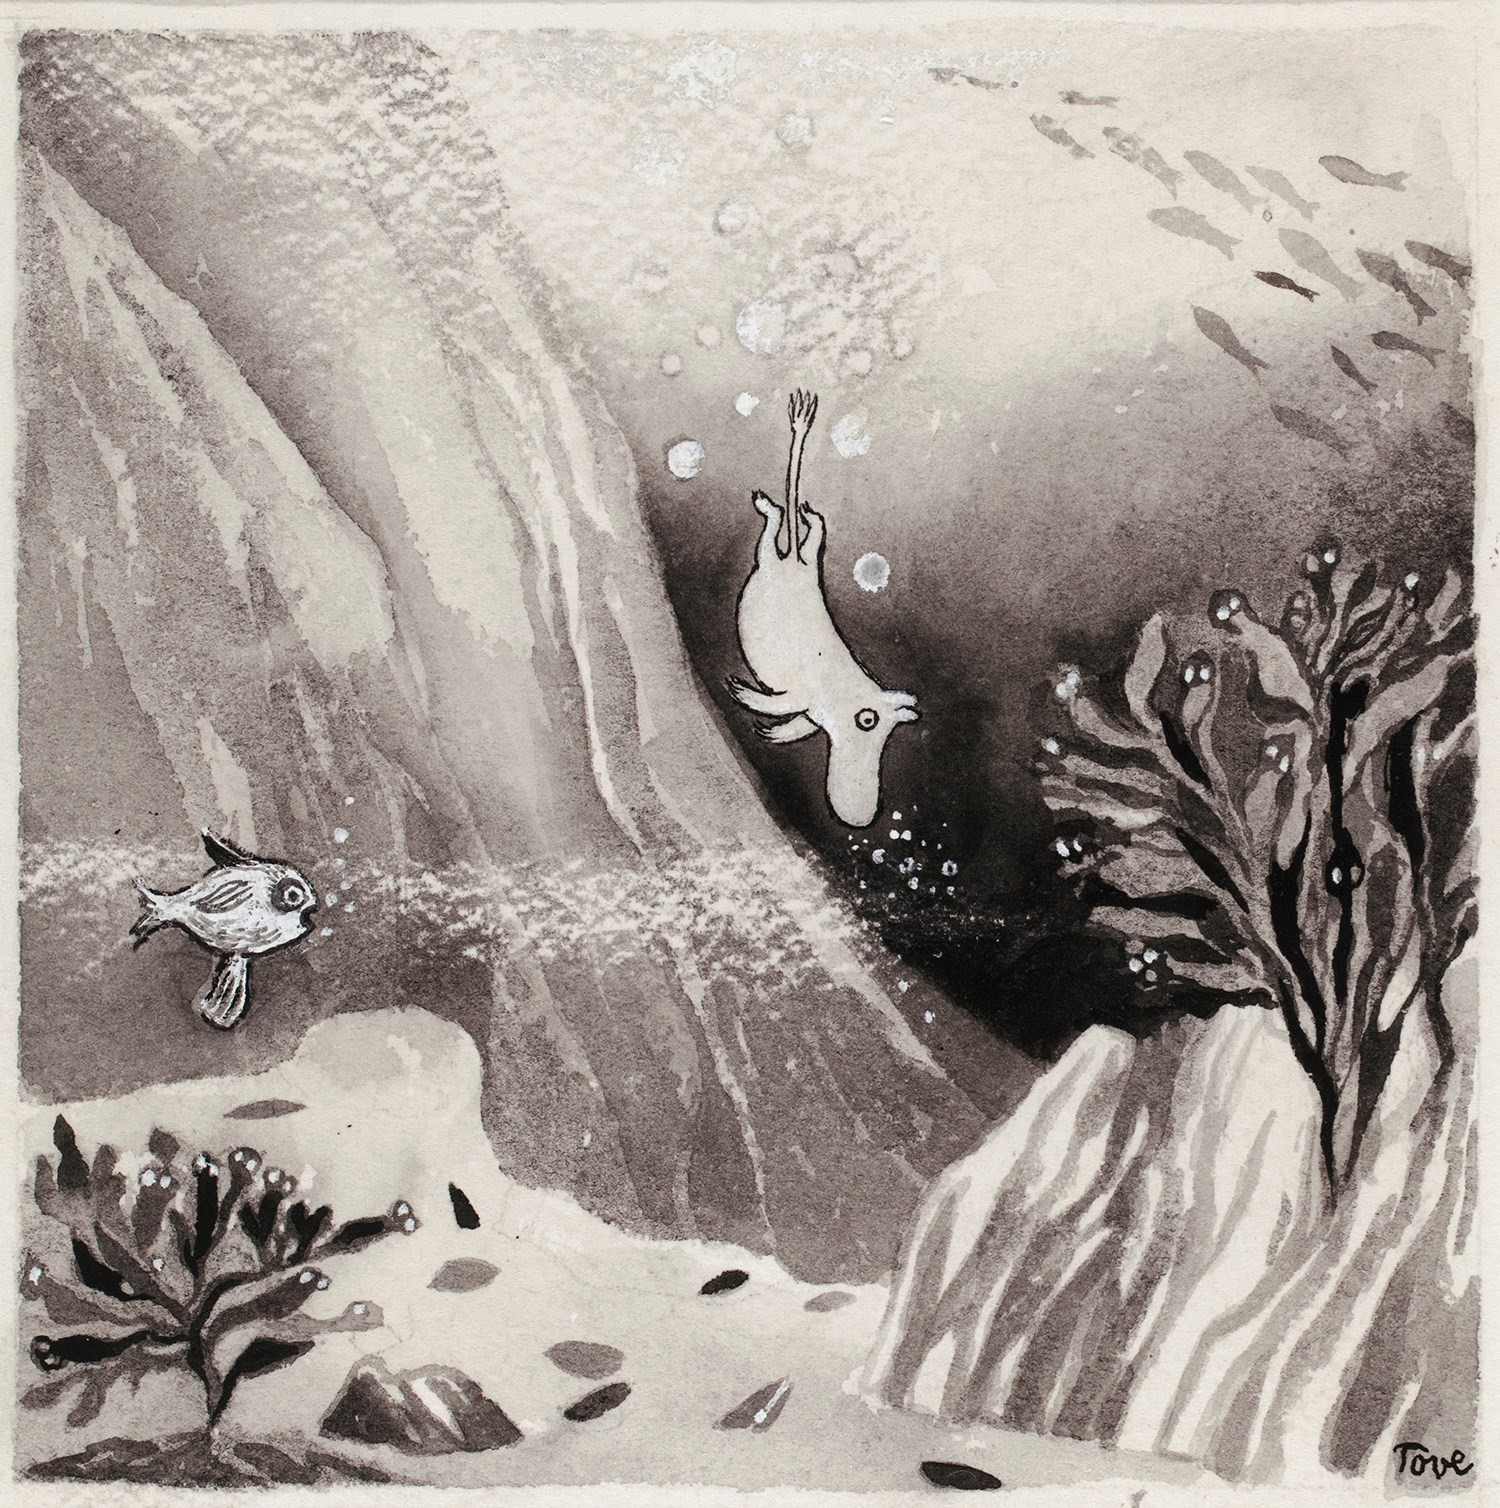 Illustration for the book Comet in Moominland